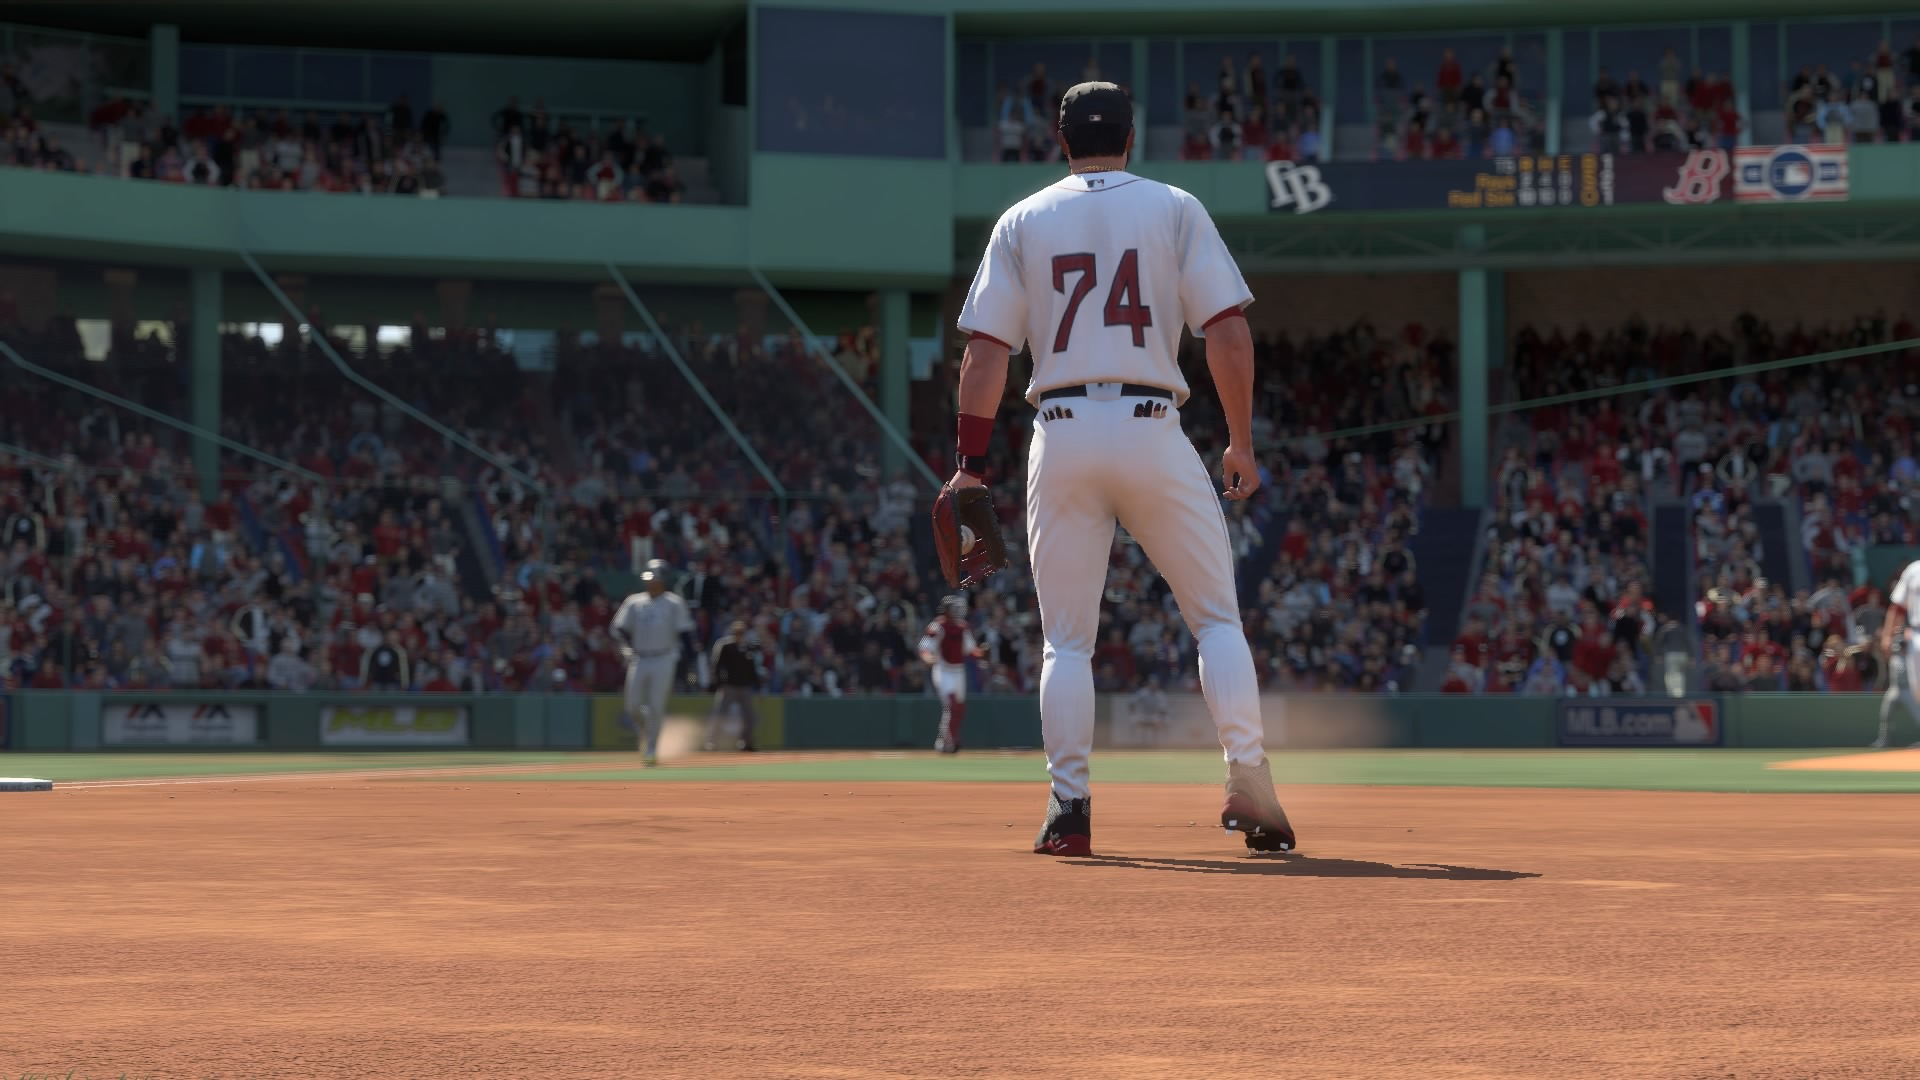 Double play - MLB The Show 16 PlayStation 4, Скриншот из игры